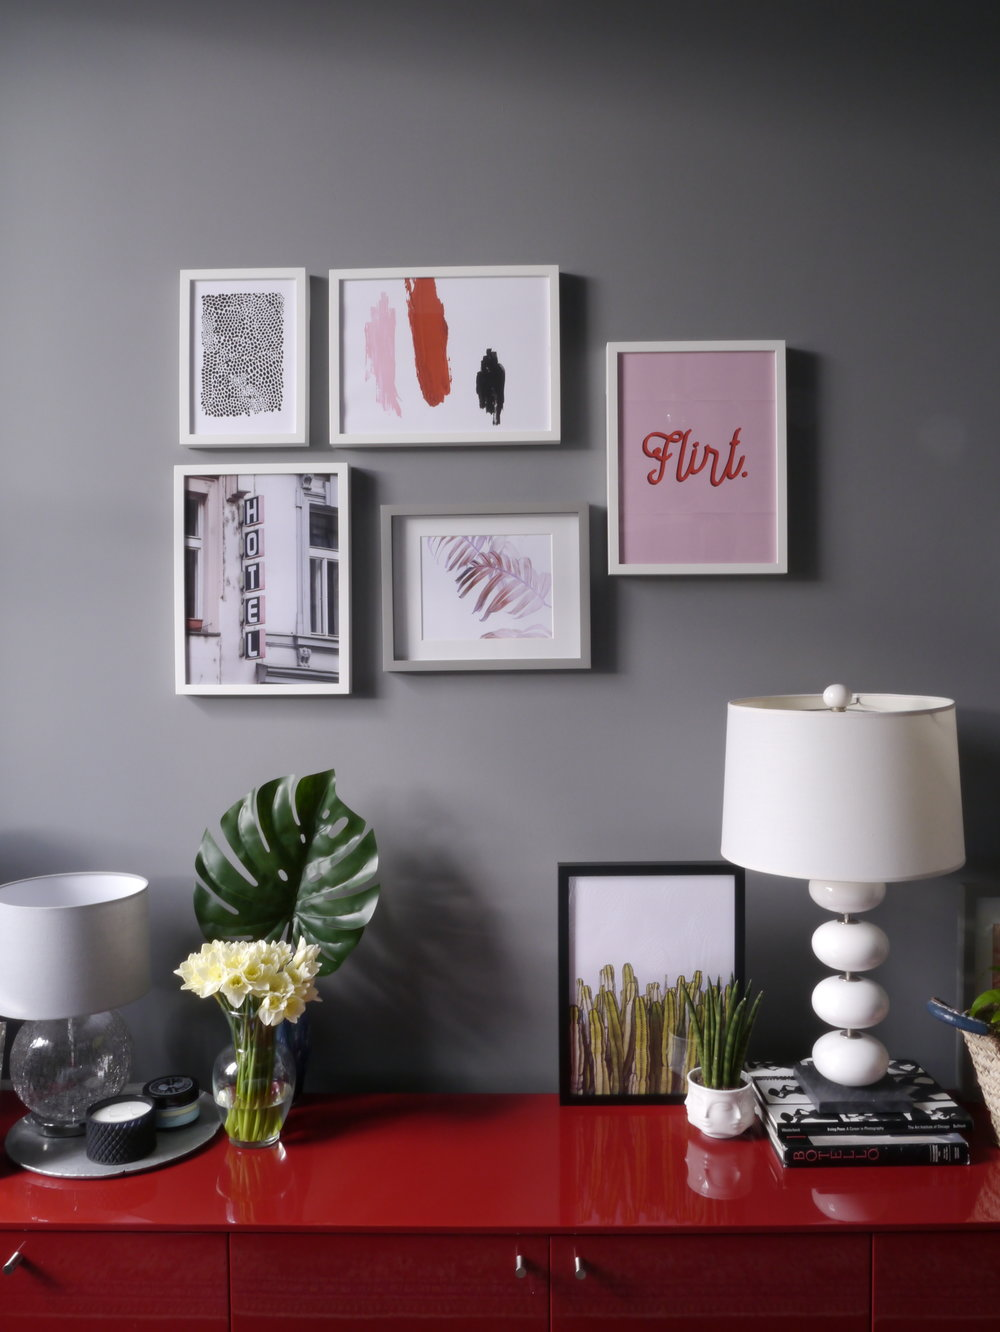 Liznylon_bedroom_gallerywall_pink_and_grey.JPG